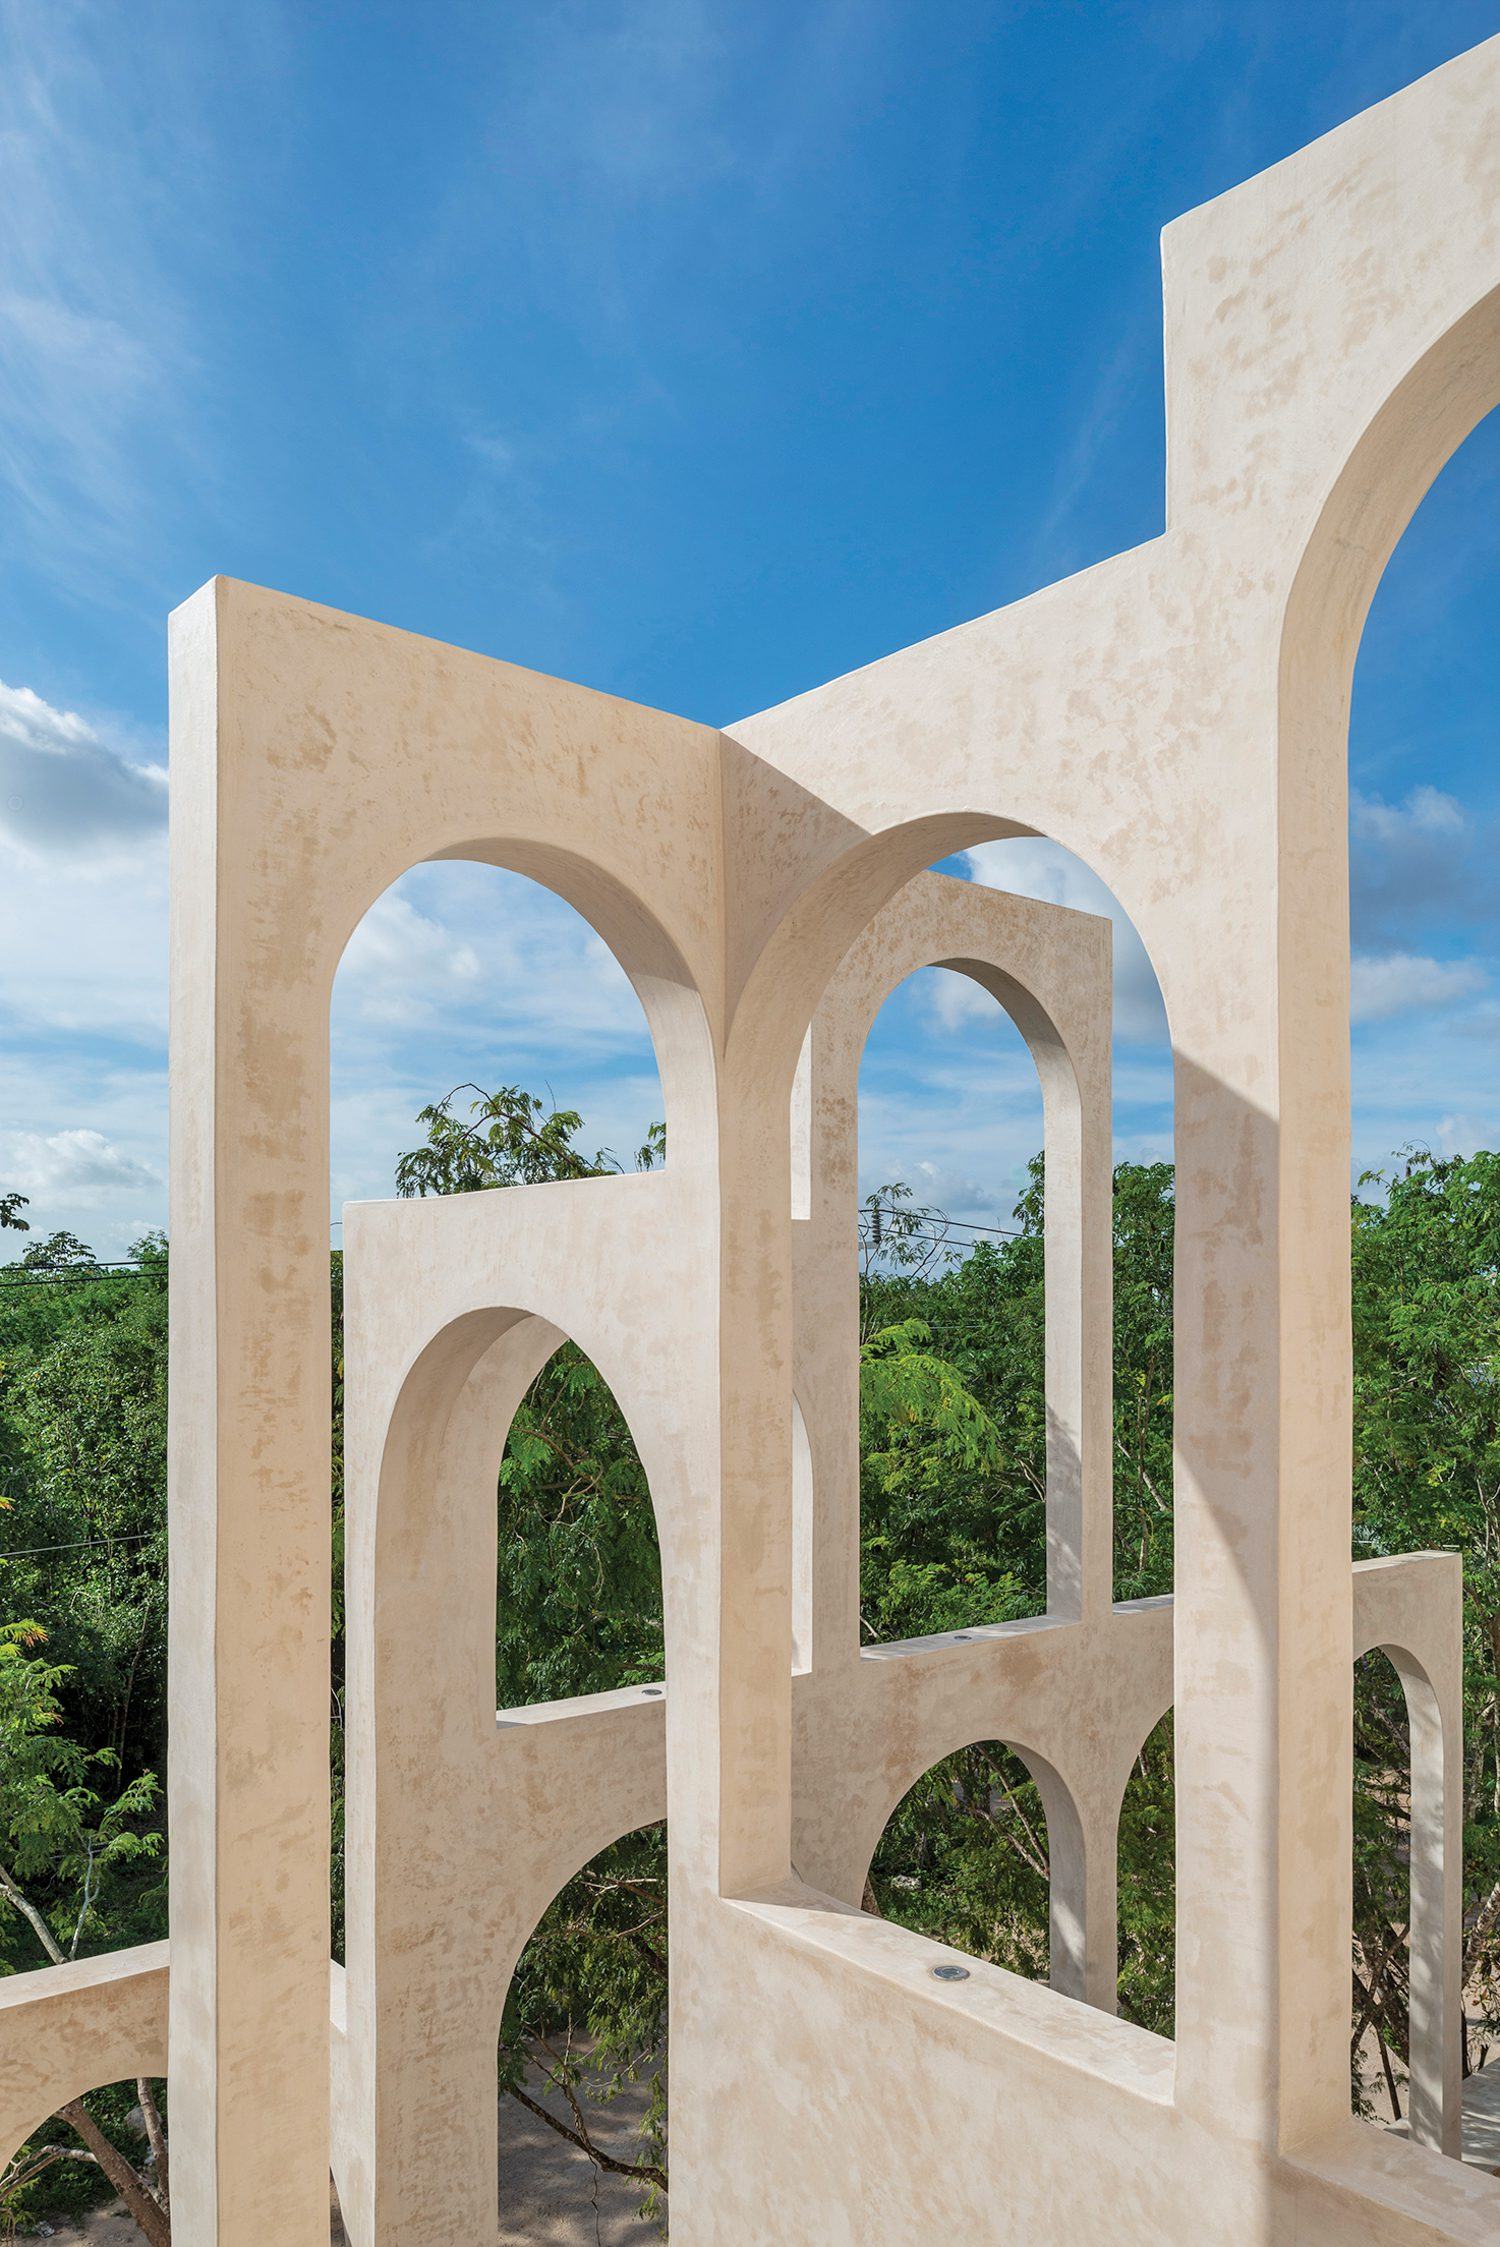 Some arches were added during construction to create the most pleasing composition, the final result resembling a modernized Roman aqueduct.